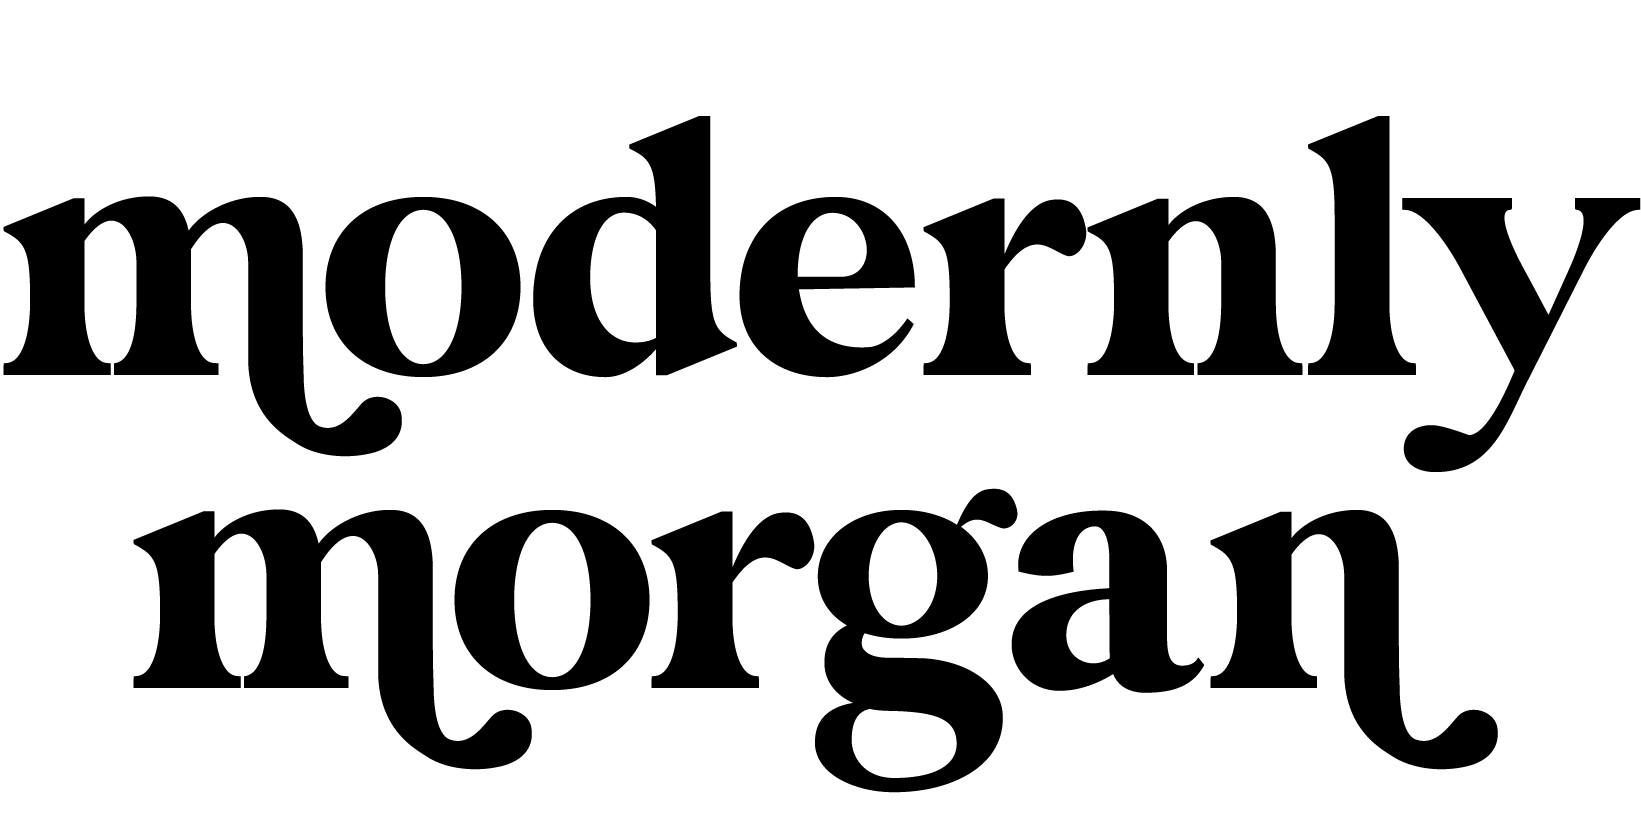 Modernly Morgan